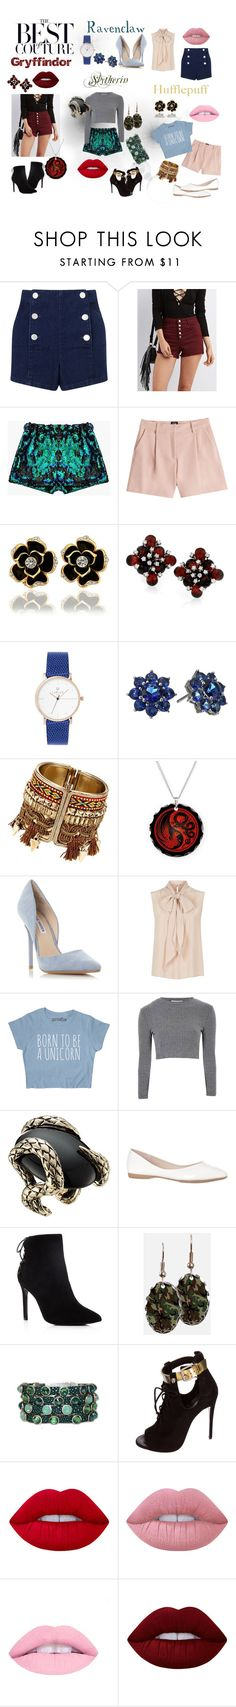 """Modern Hogwarts Houses Fashion"" by nic-yeol on Polyvore featuring Miss Selfridge, Refuge, McQ by Alexander McQueen, Nina, Steve Madden, MaxMara, Glamorous, Roberto Cavalli, Charles David and HEET"